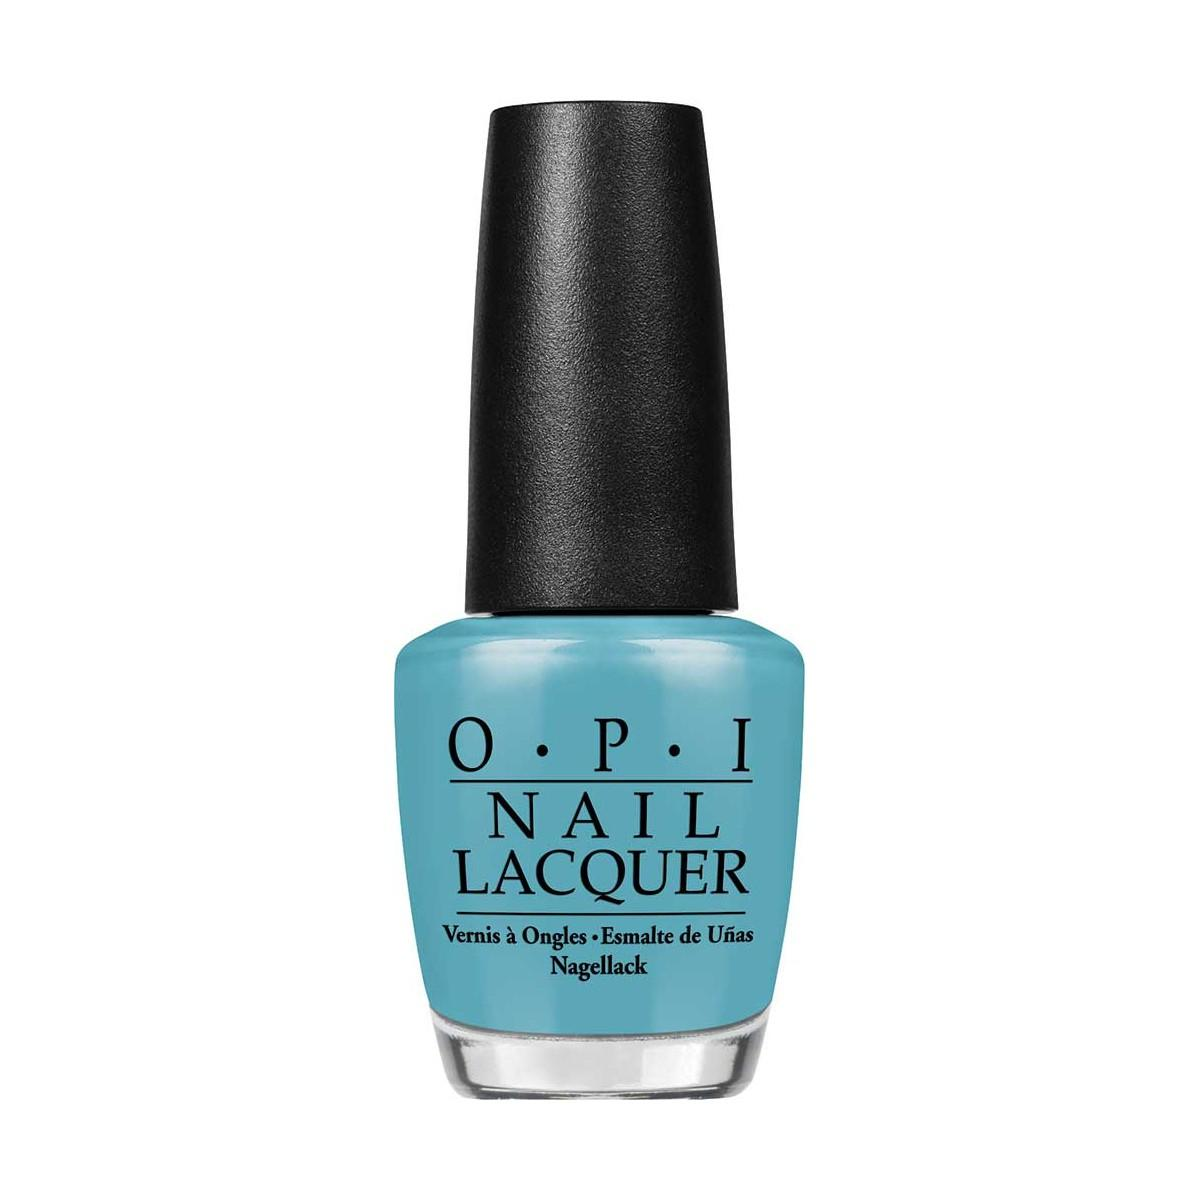 Opi Nail Lacquer Nle75 Can T Find My Czechbook